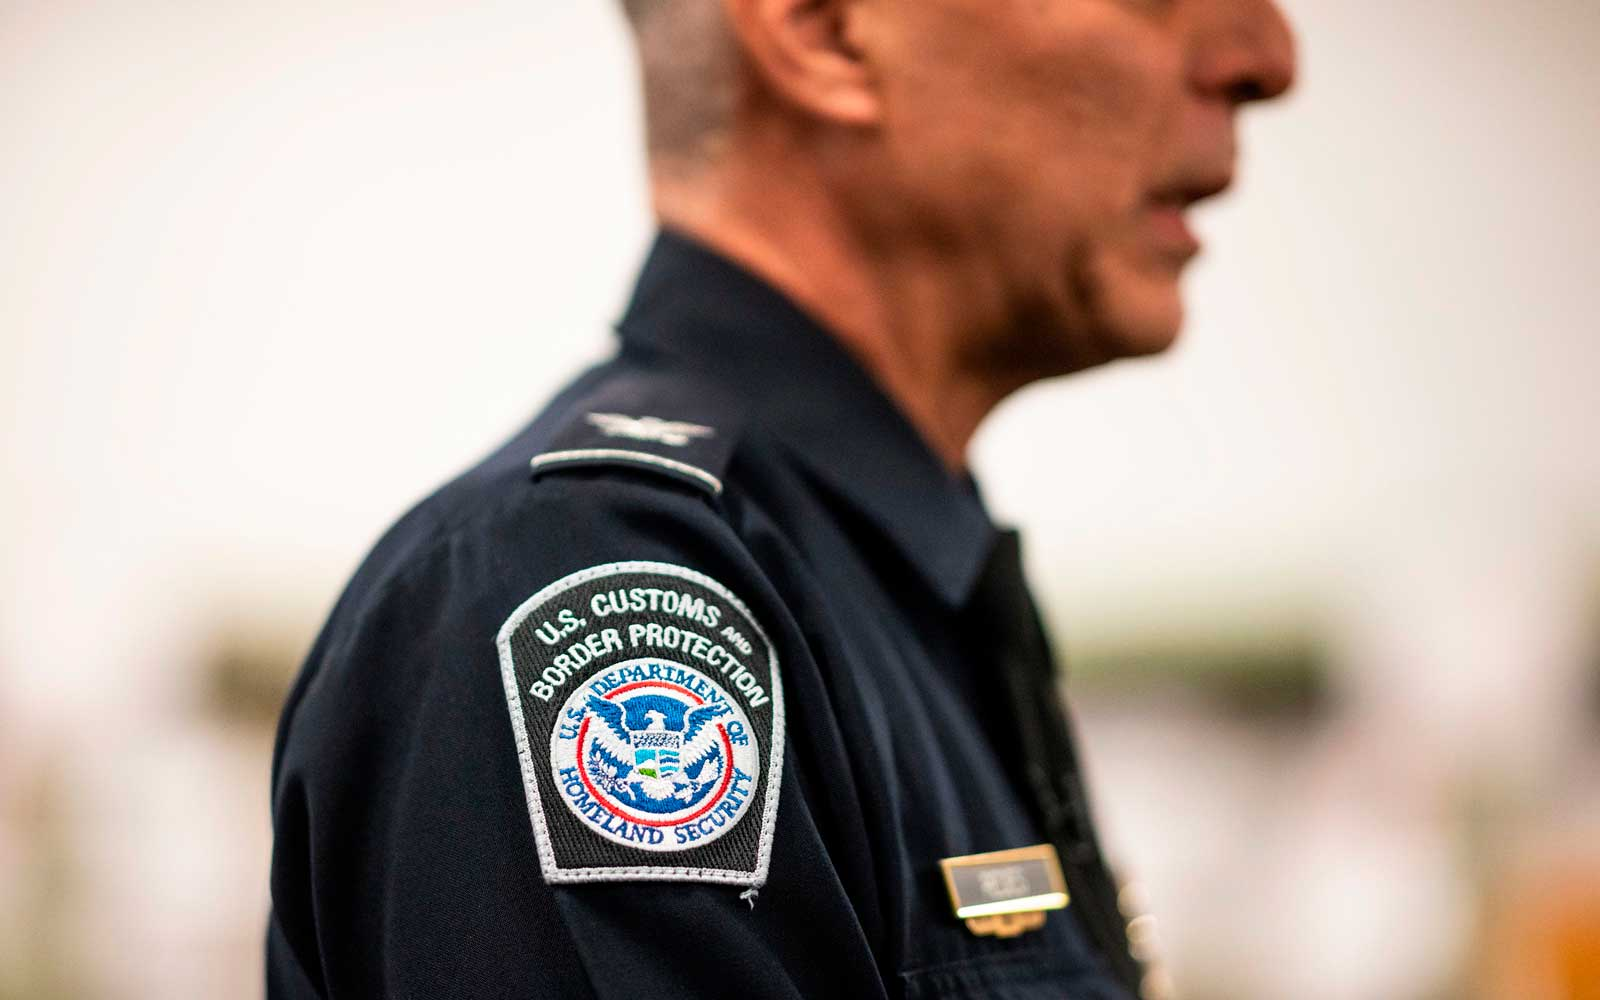 Airport Customs and Border Protections